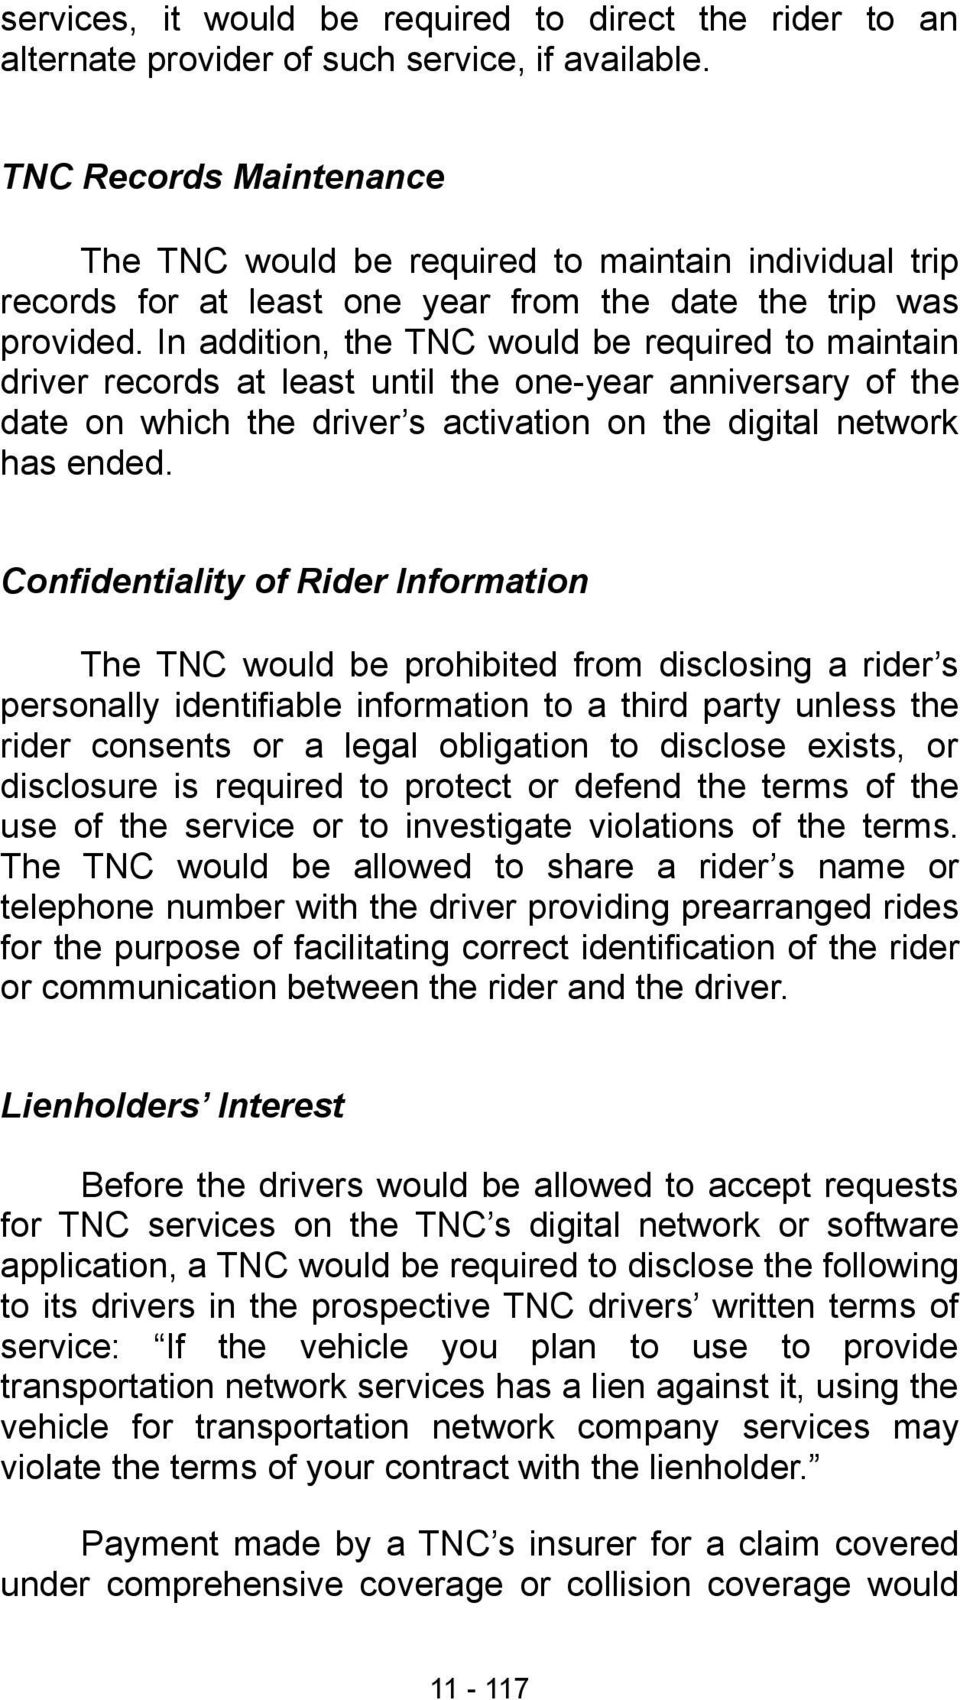 In addition, the TNC would be required to maintain driver records at least until the one-year anniversary of the date on which the driver s activation on the digital network has ended.